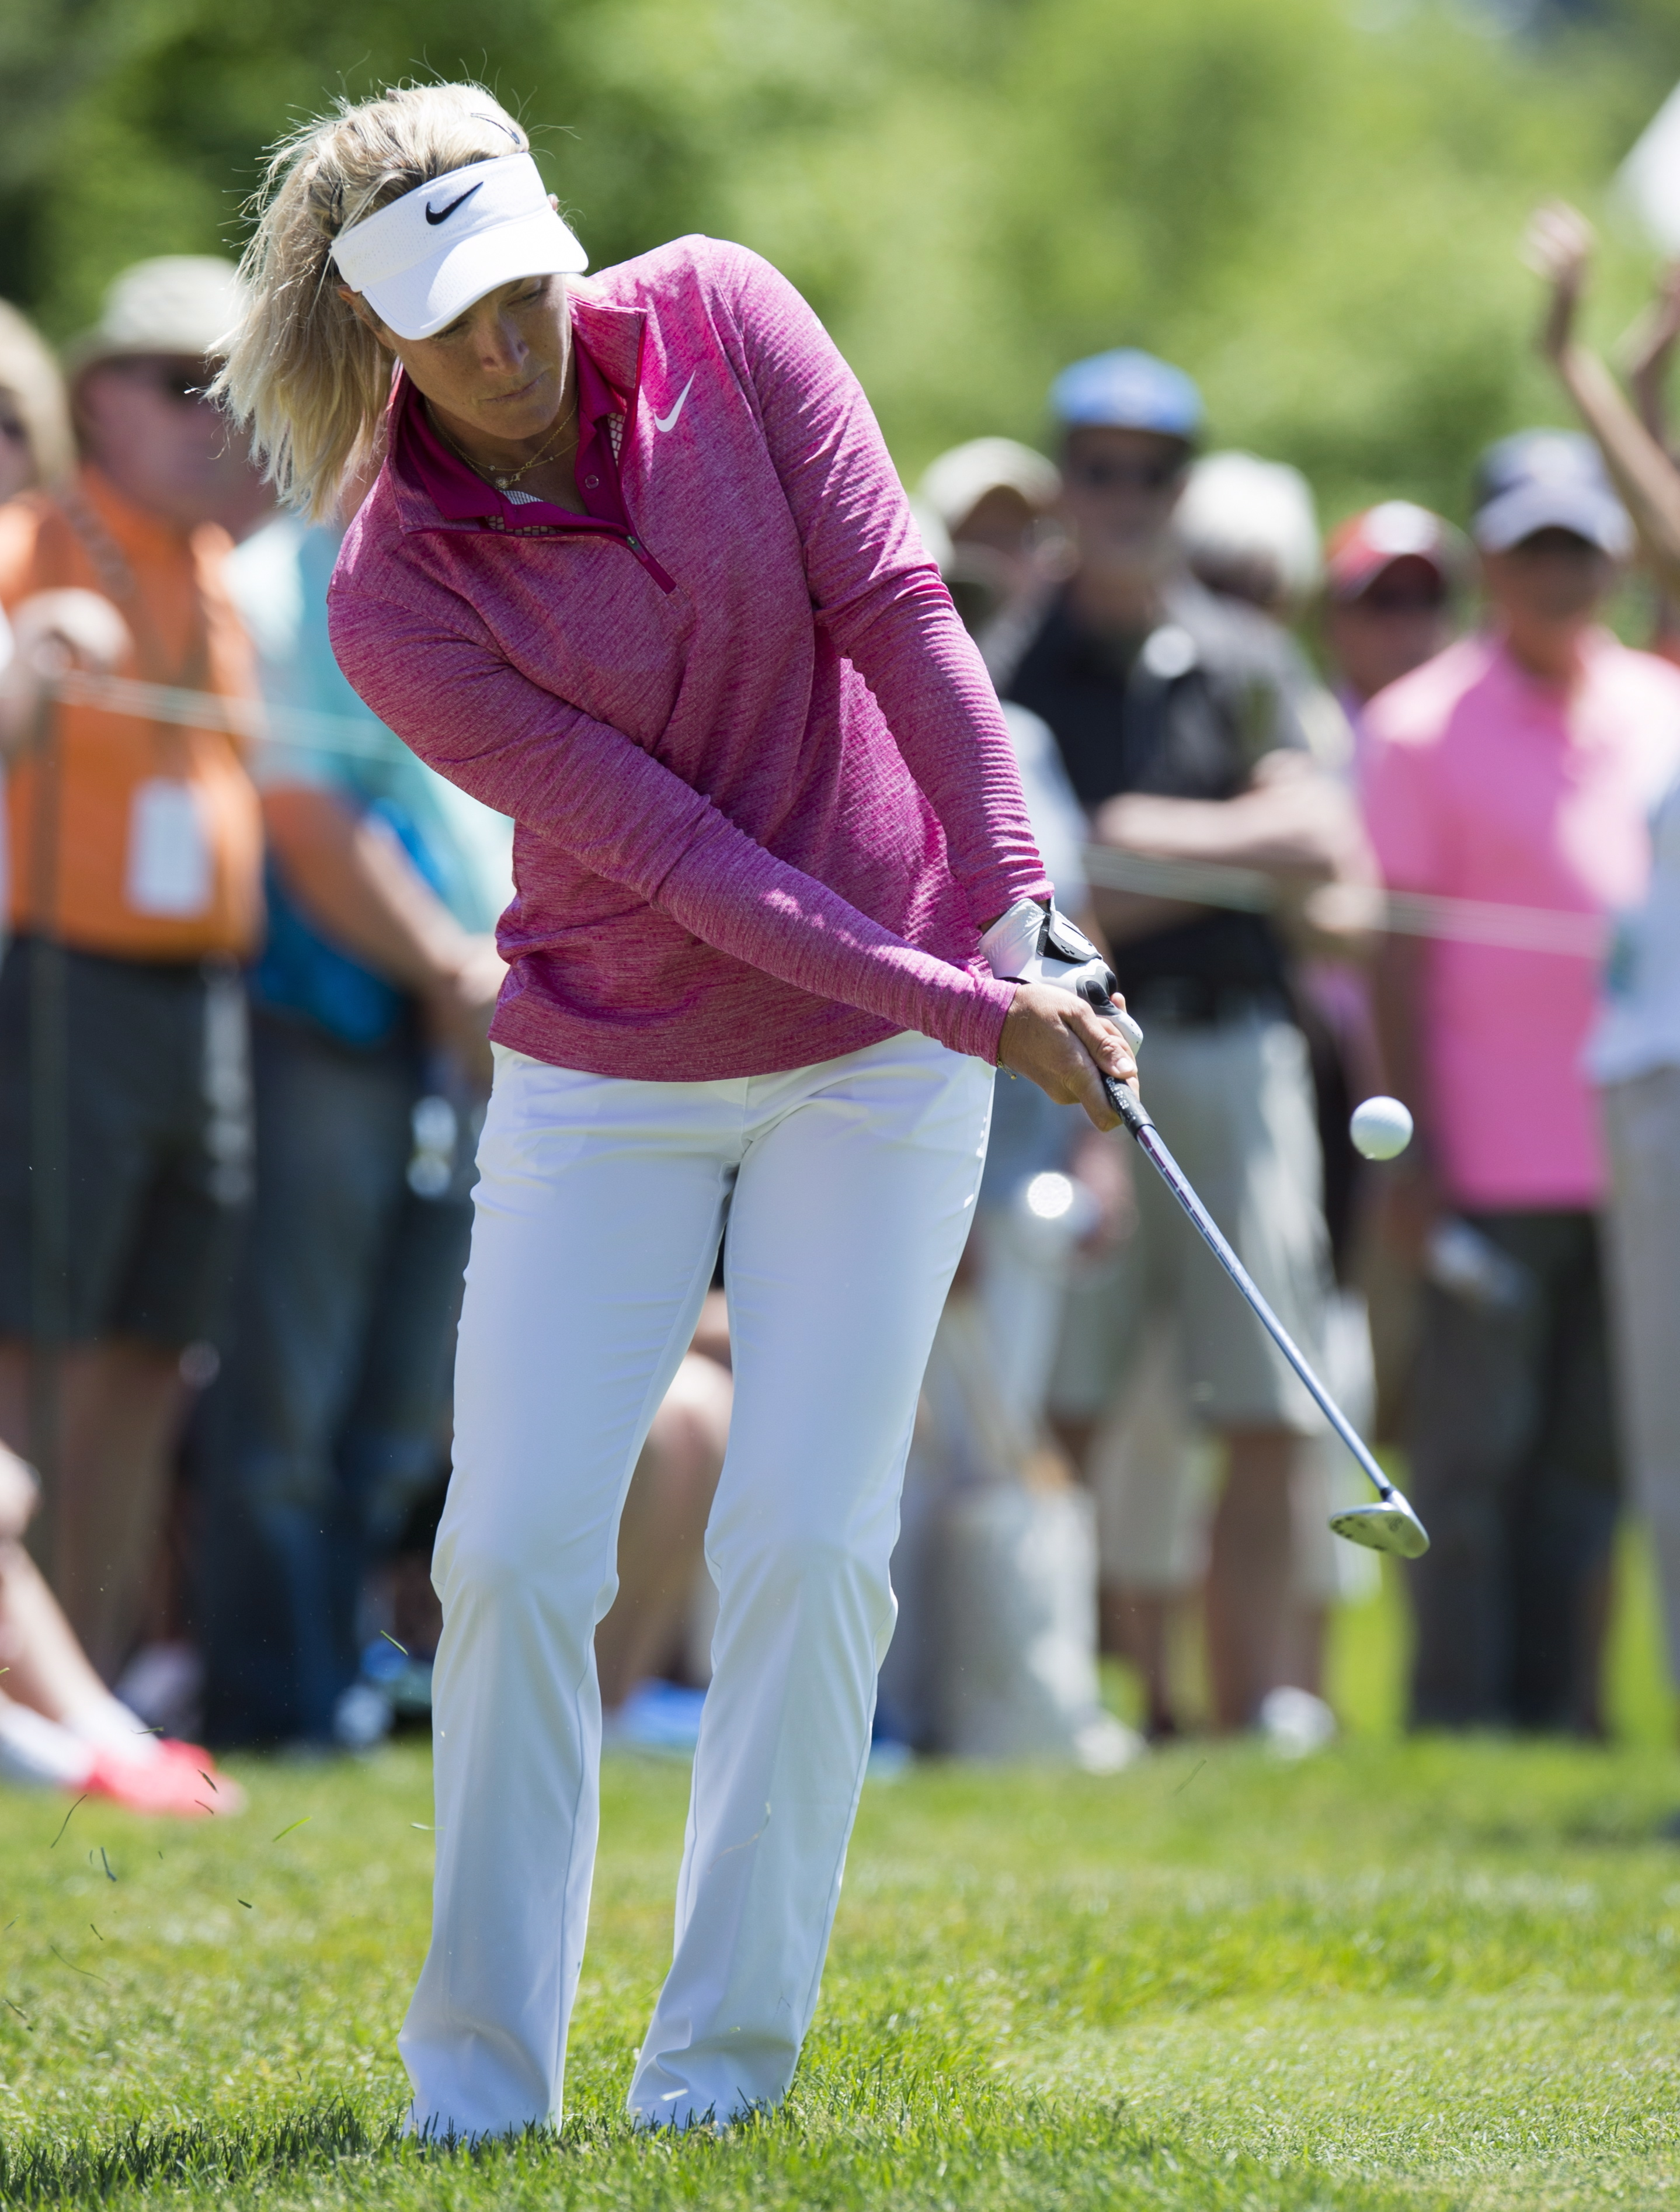 Suzann Pettersen, of Norway, chips onto the 16th green  during the first round of the LPGA Classic golf tournament at Whistle Bear Golf Club in Cambridge, Ontario, Thursday, June 8, 2017. (Frank Gunn/The Canadian Press via AP)